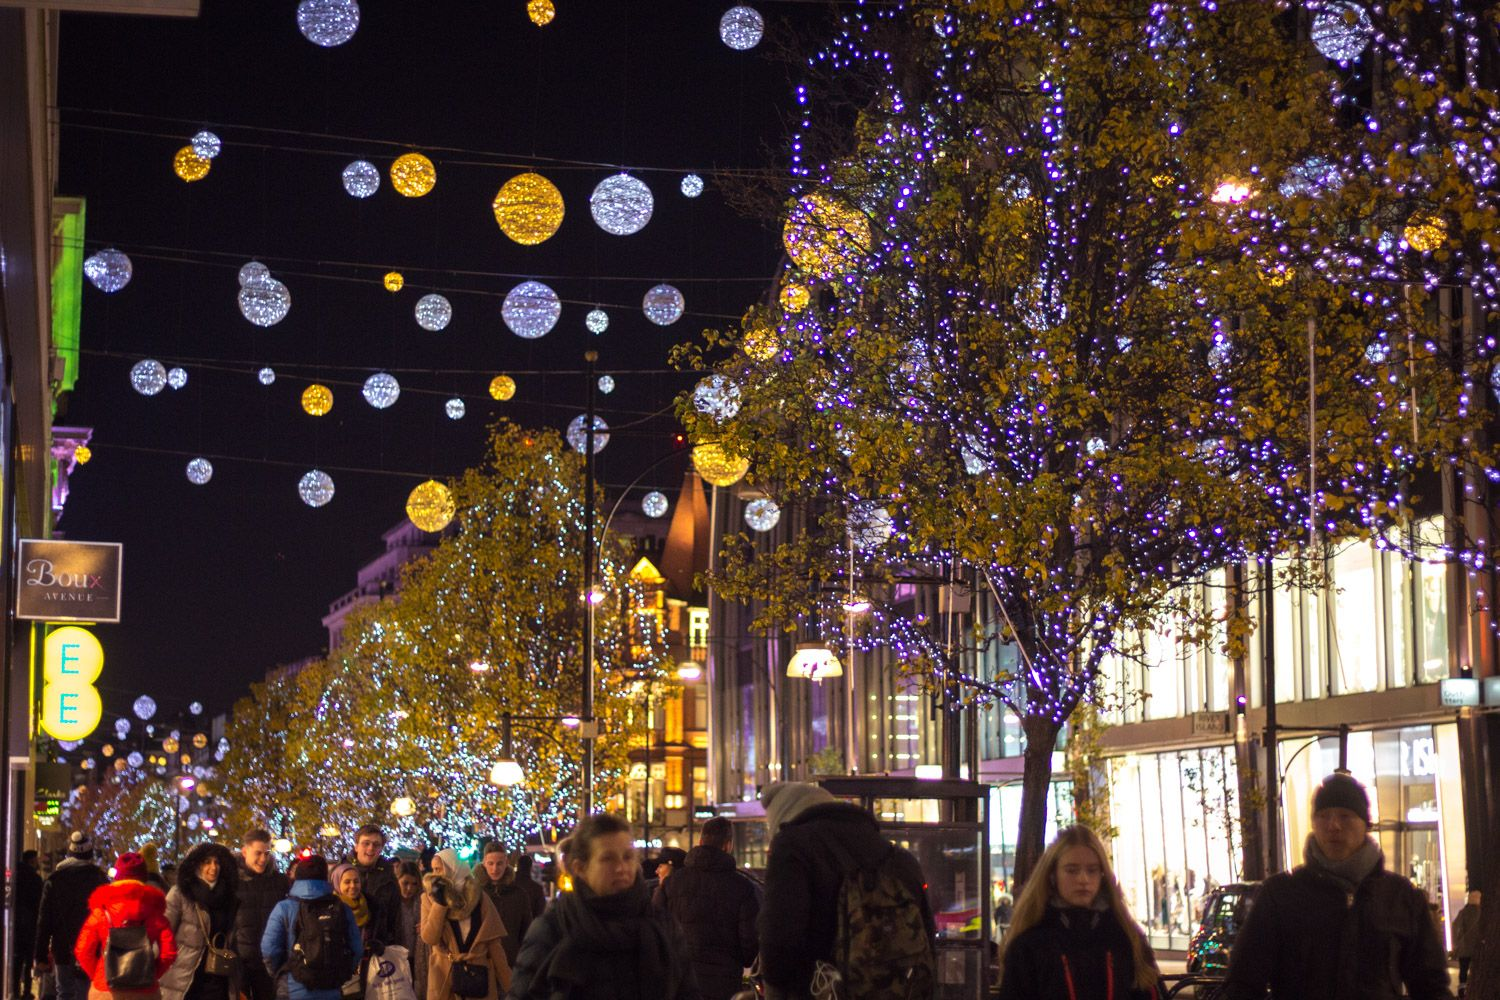 England Christmas Lights.Christmas Lights And Decorations In Winter London England